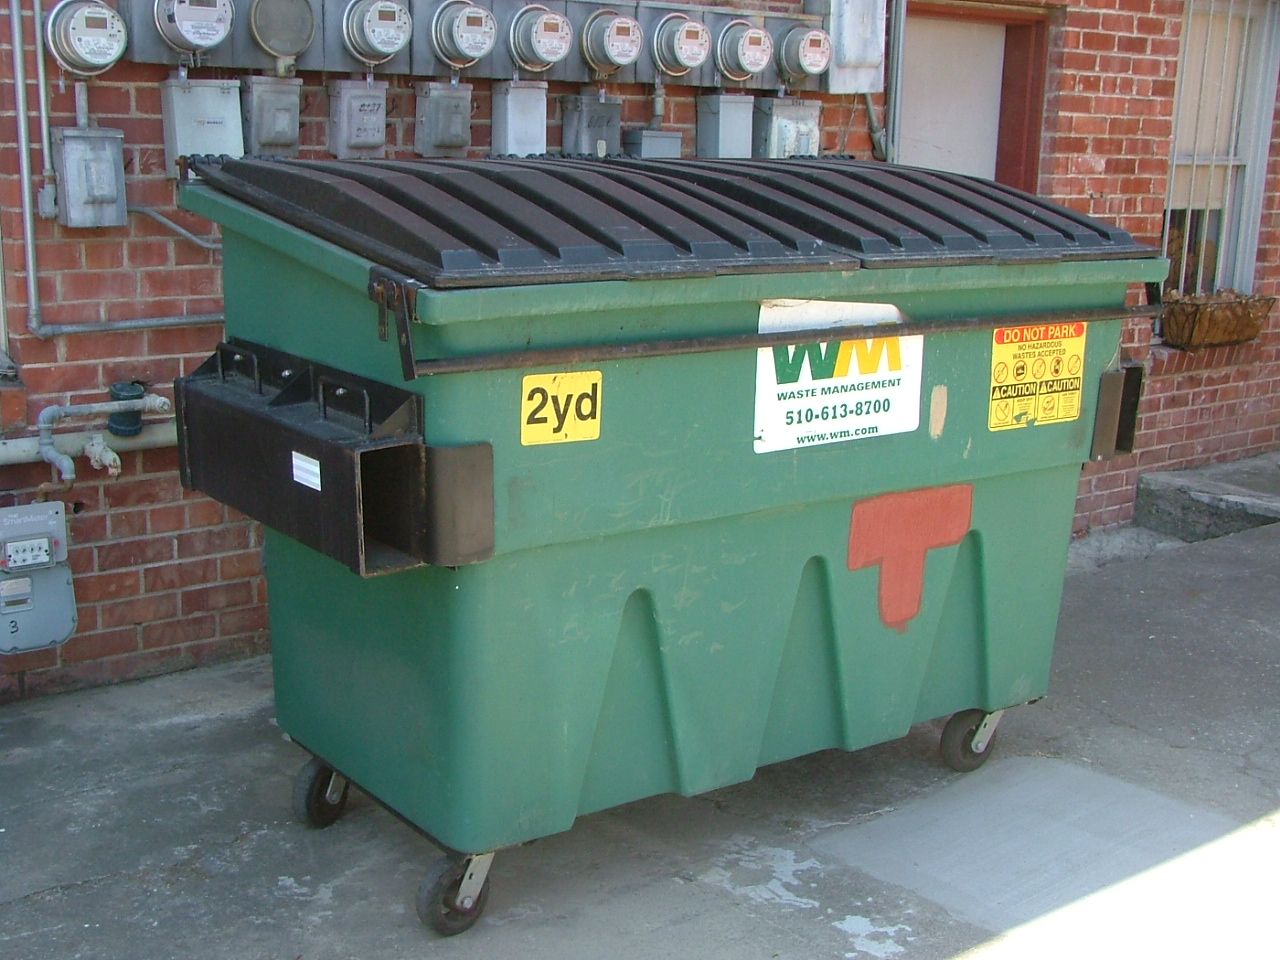 Dumpster Images - Reverse Search